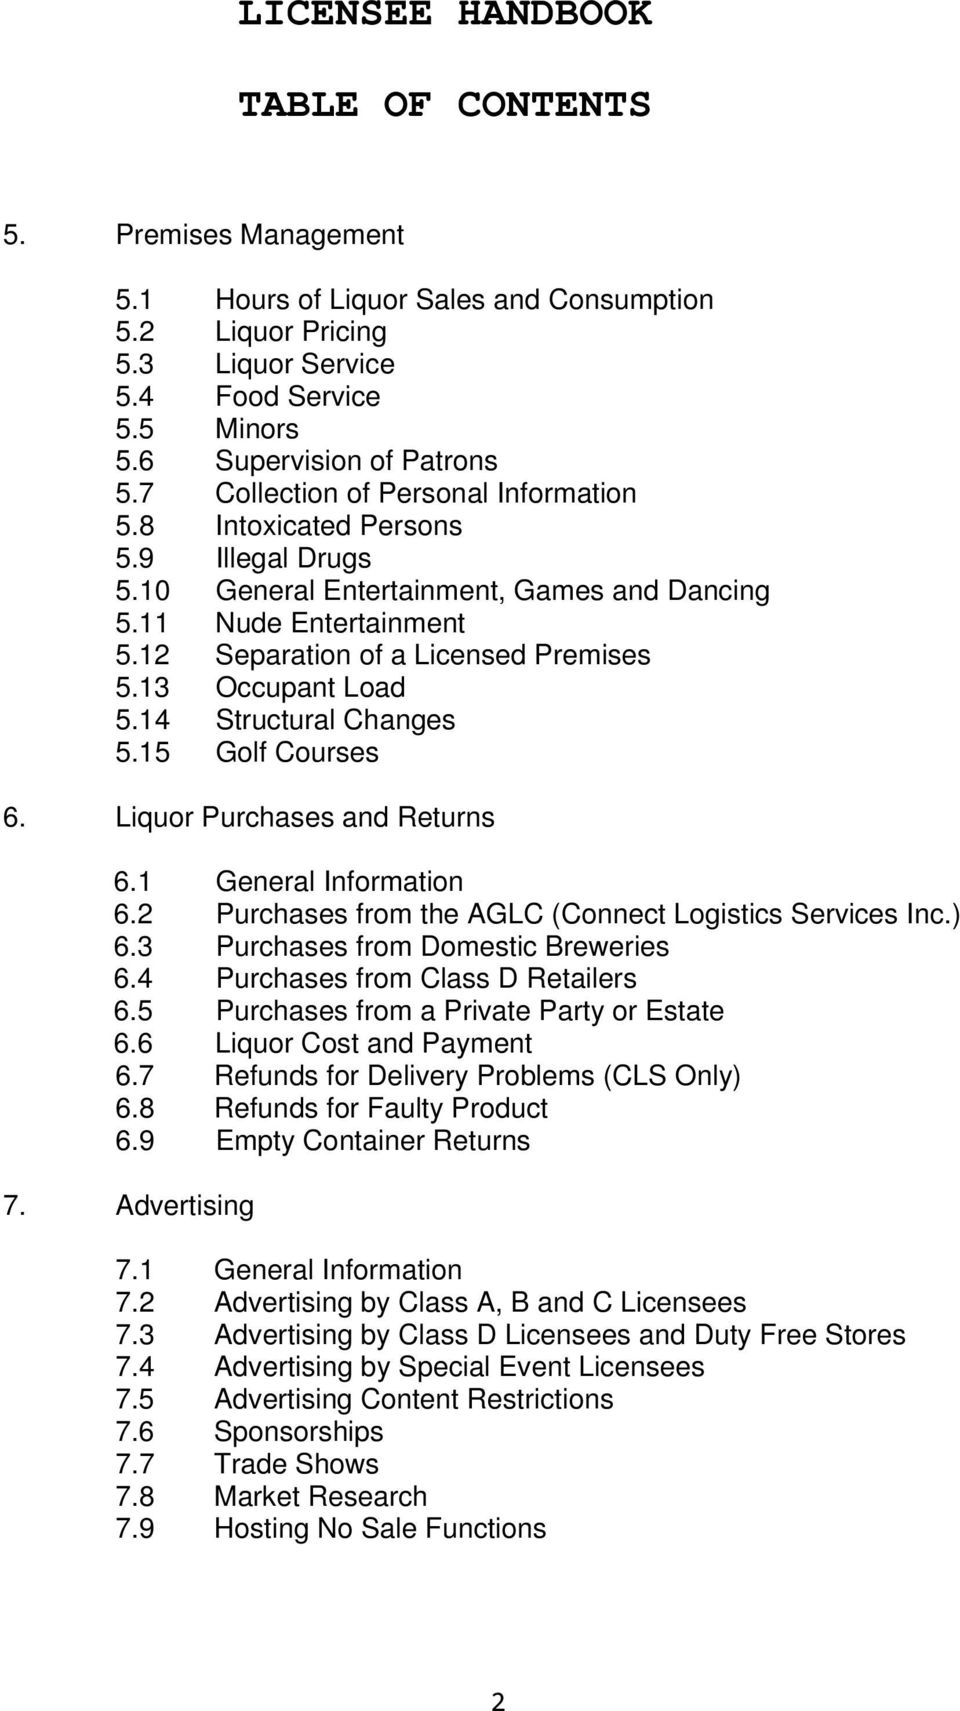 Liquor licensee handbook pdf for Table 6 2 occupant load